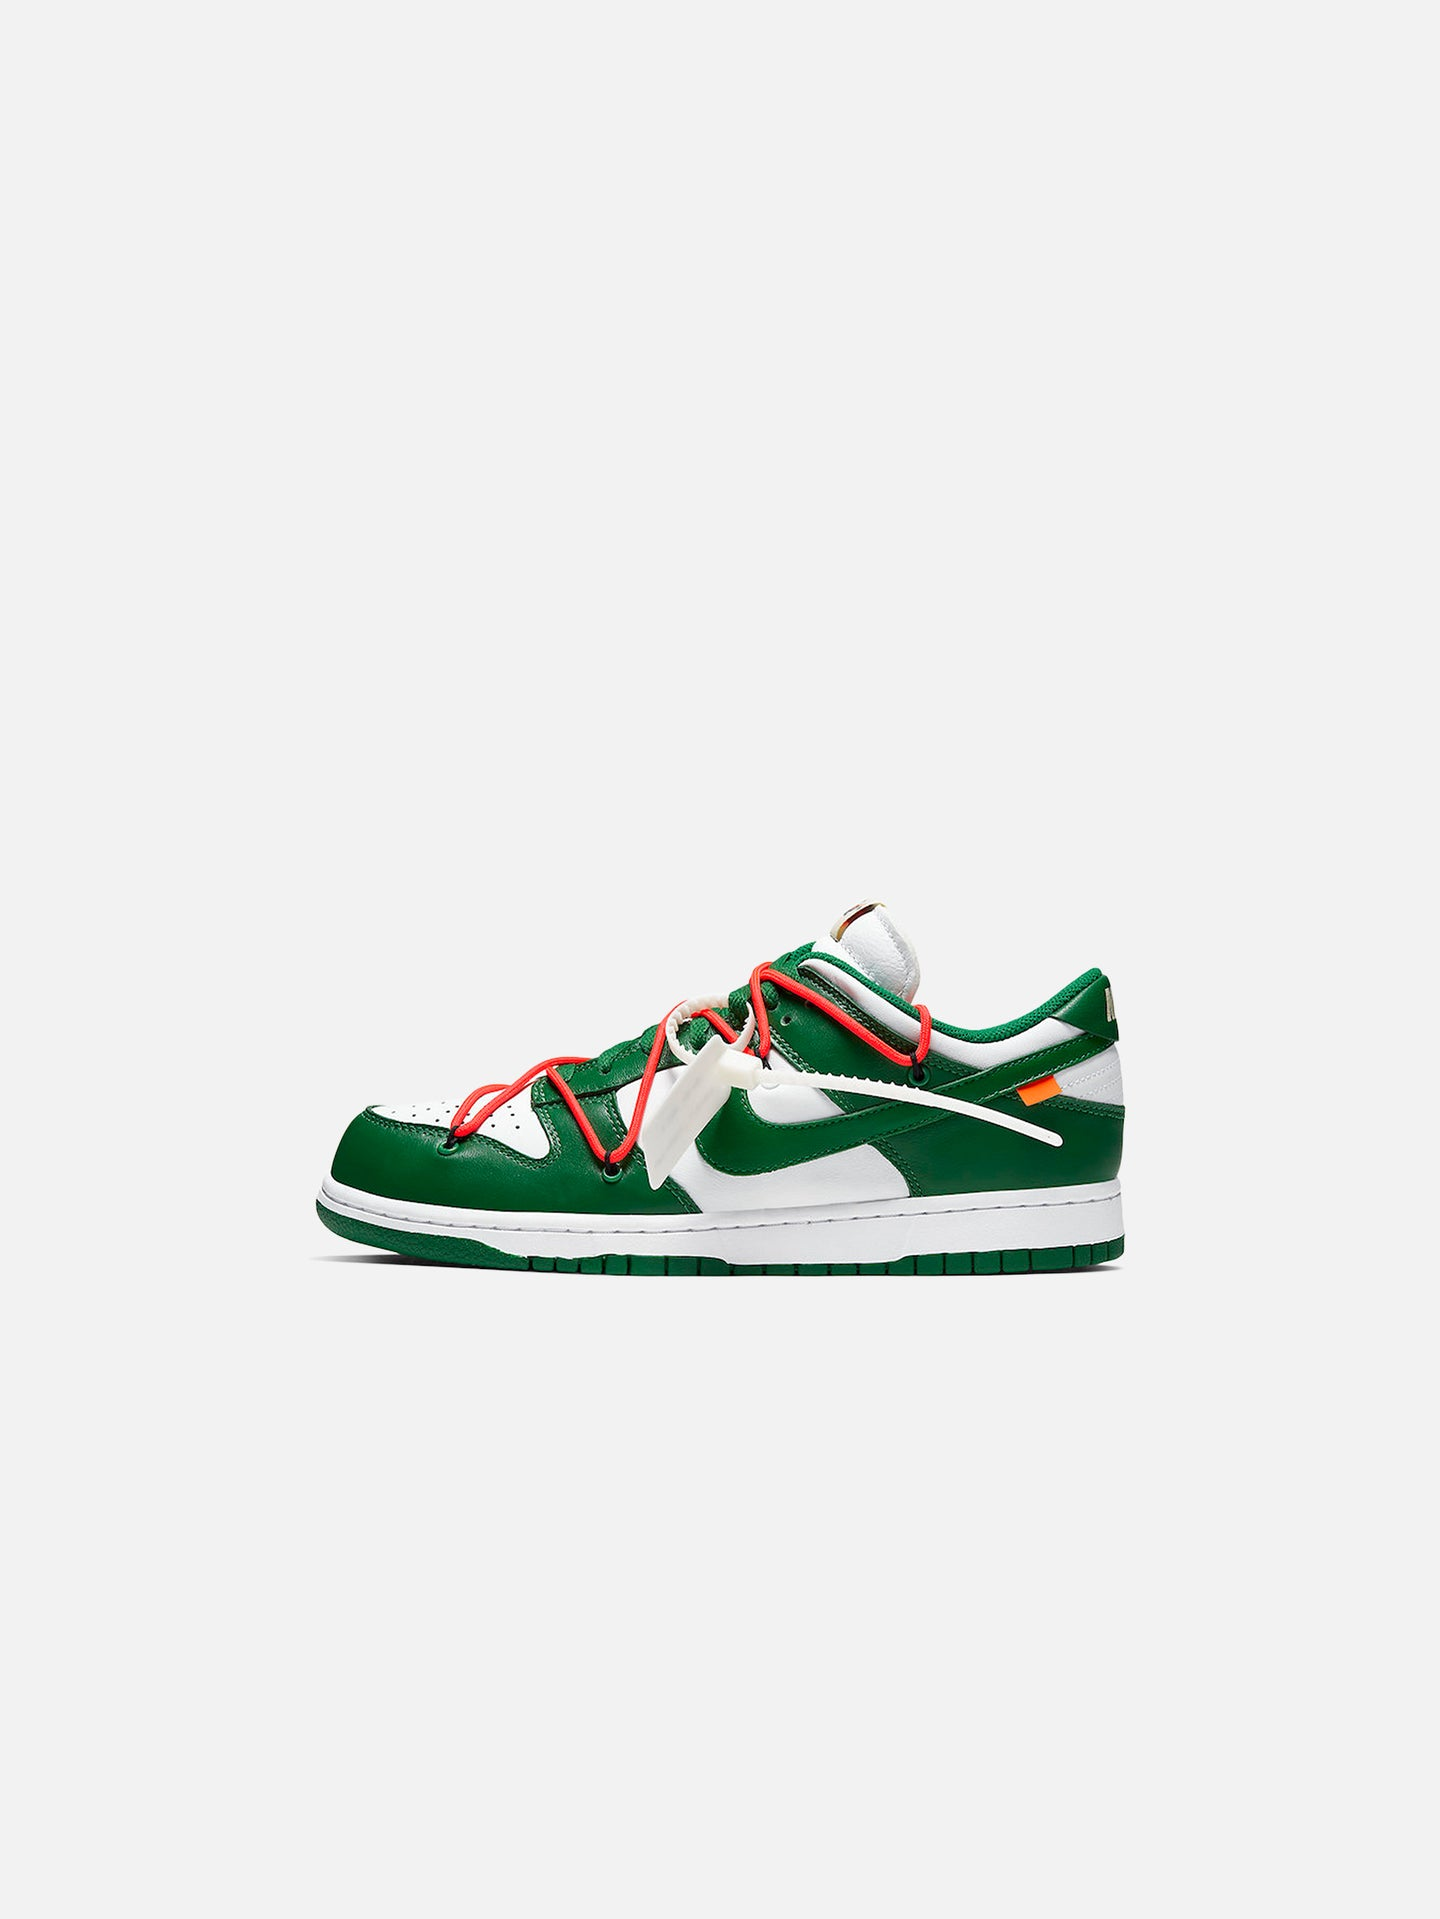 x OFF-WHITE™ DUNK LOW: PINE GREEN